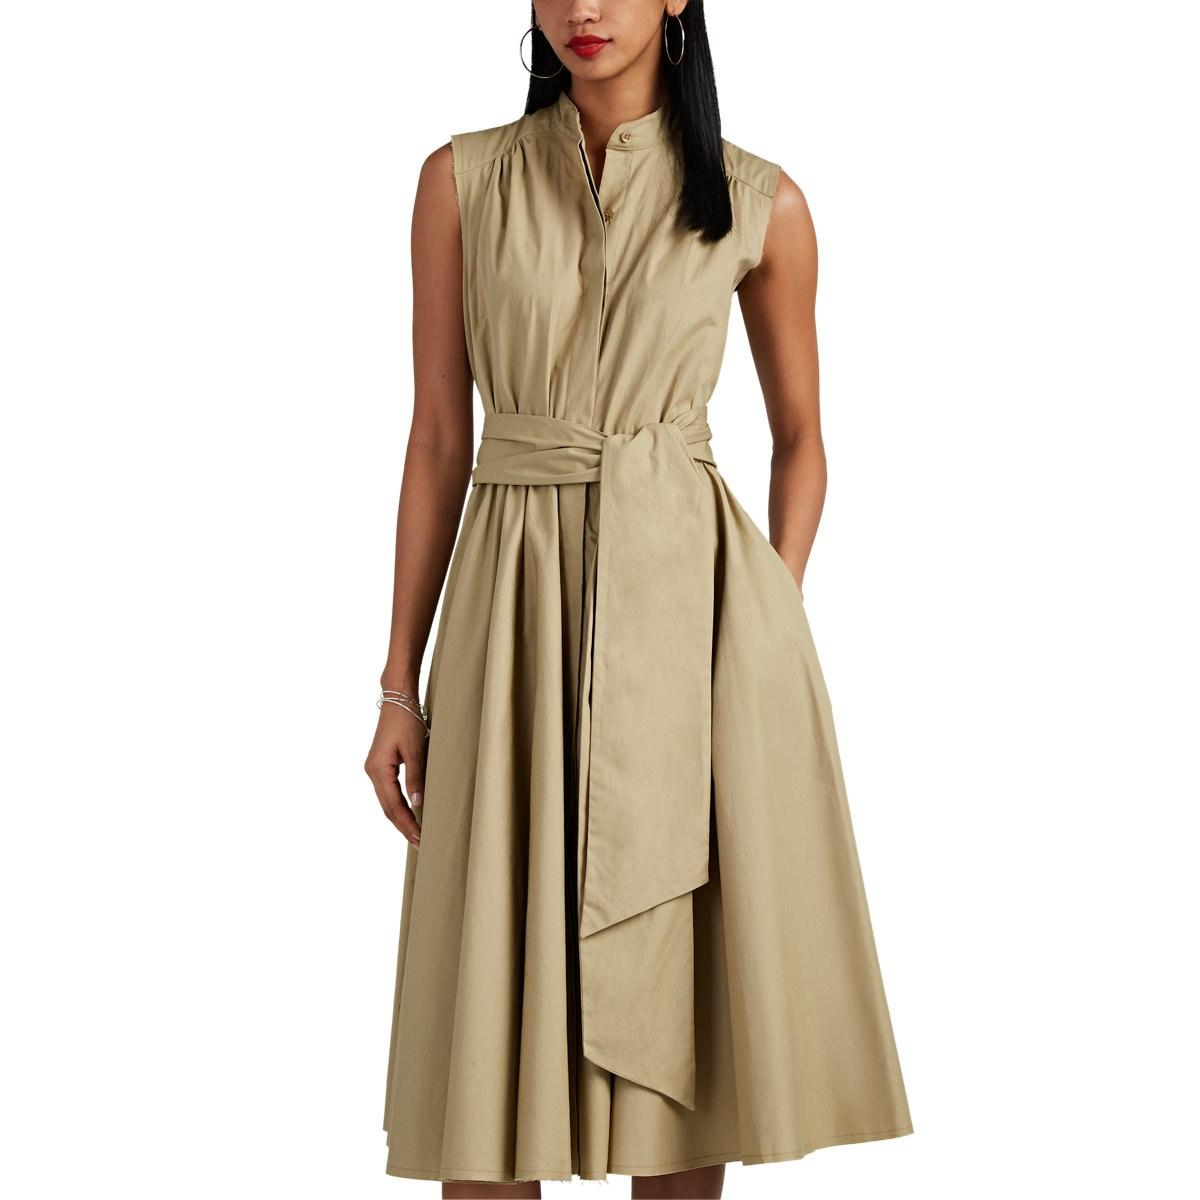 a971739630c Barneys New York. Women s Natural Pleated Cotton Poplin Belted Midi-dress